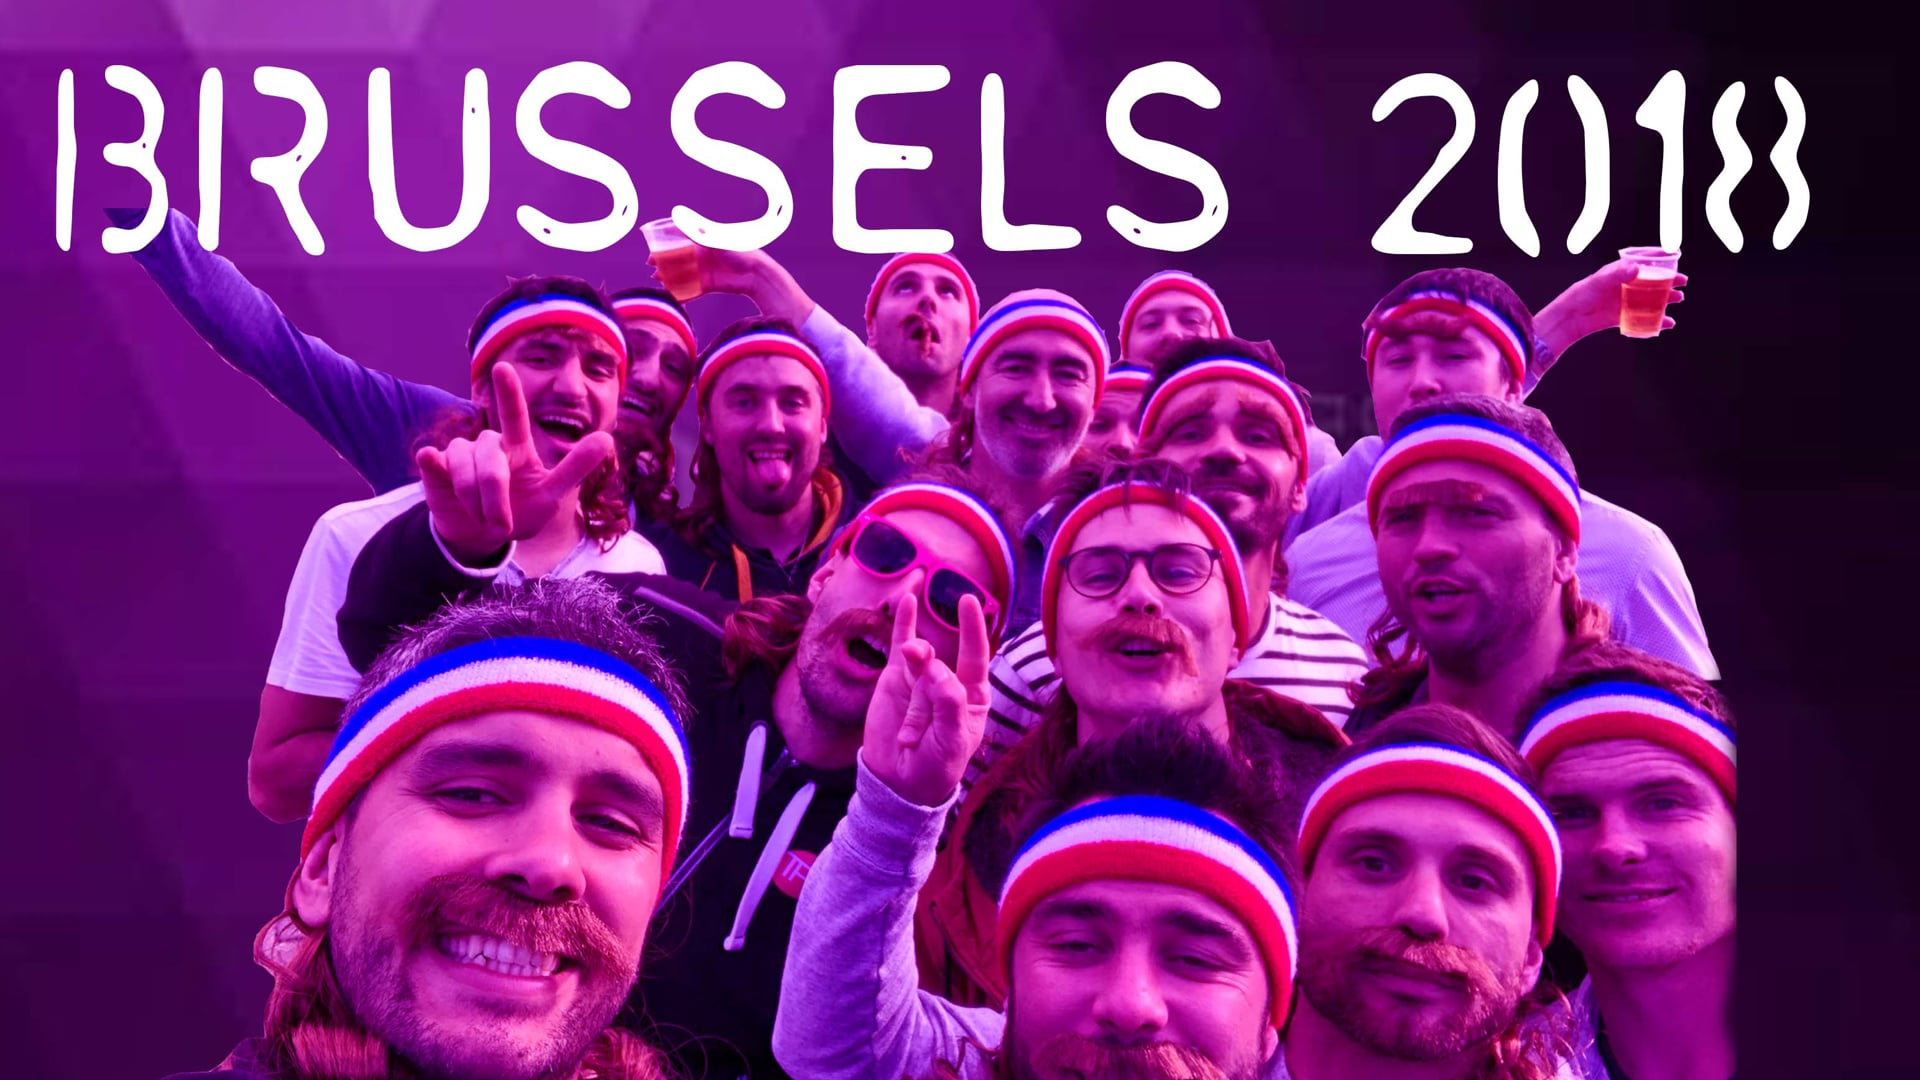 BRUSSELS 2018